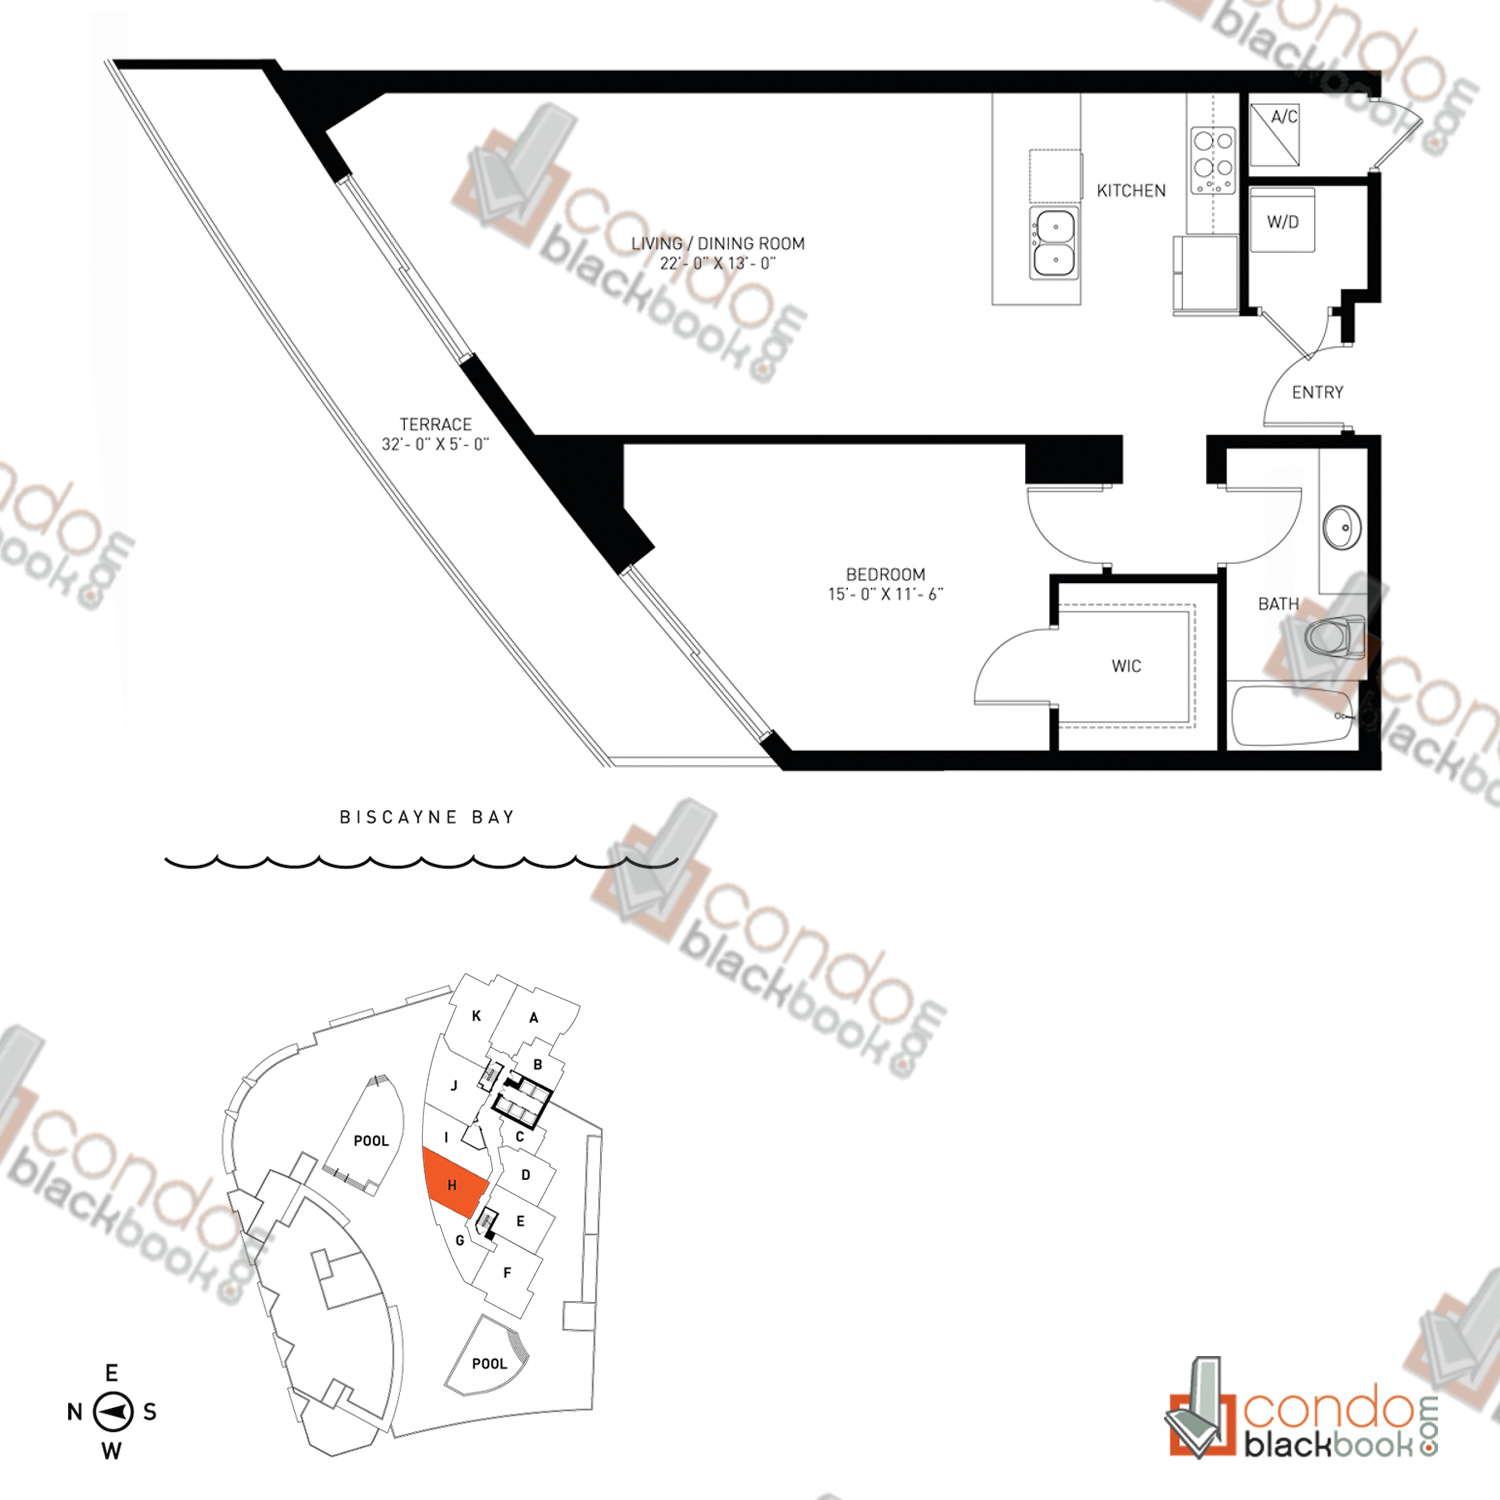 Floor plan for Quantum on the Bay Edgewater Miami, model Residence_H, line South Tower - 08, 1/1 bedrooms, 837 sq ft